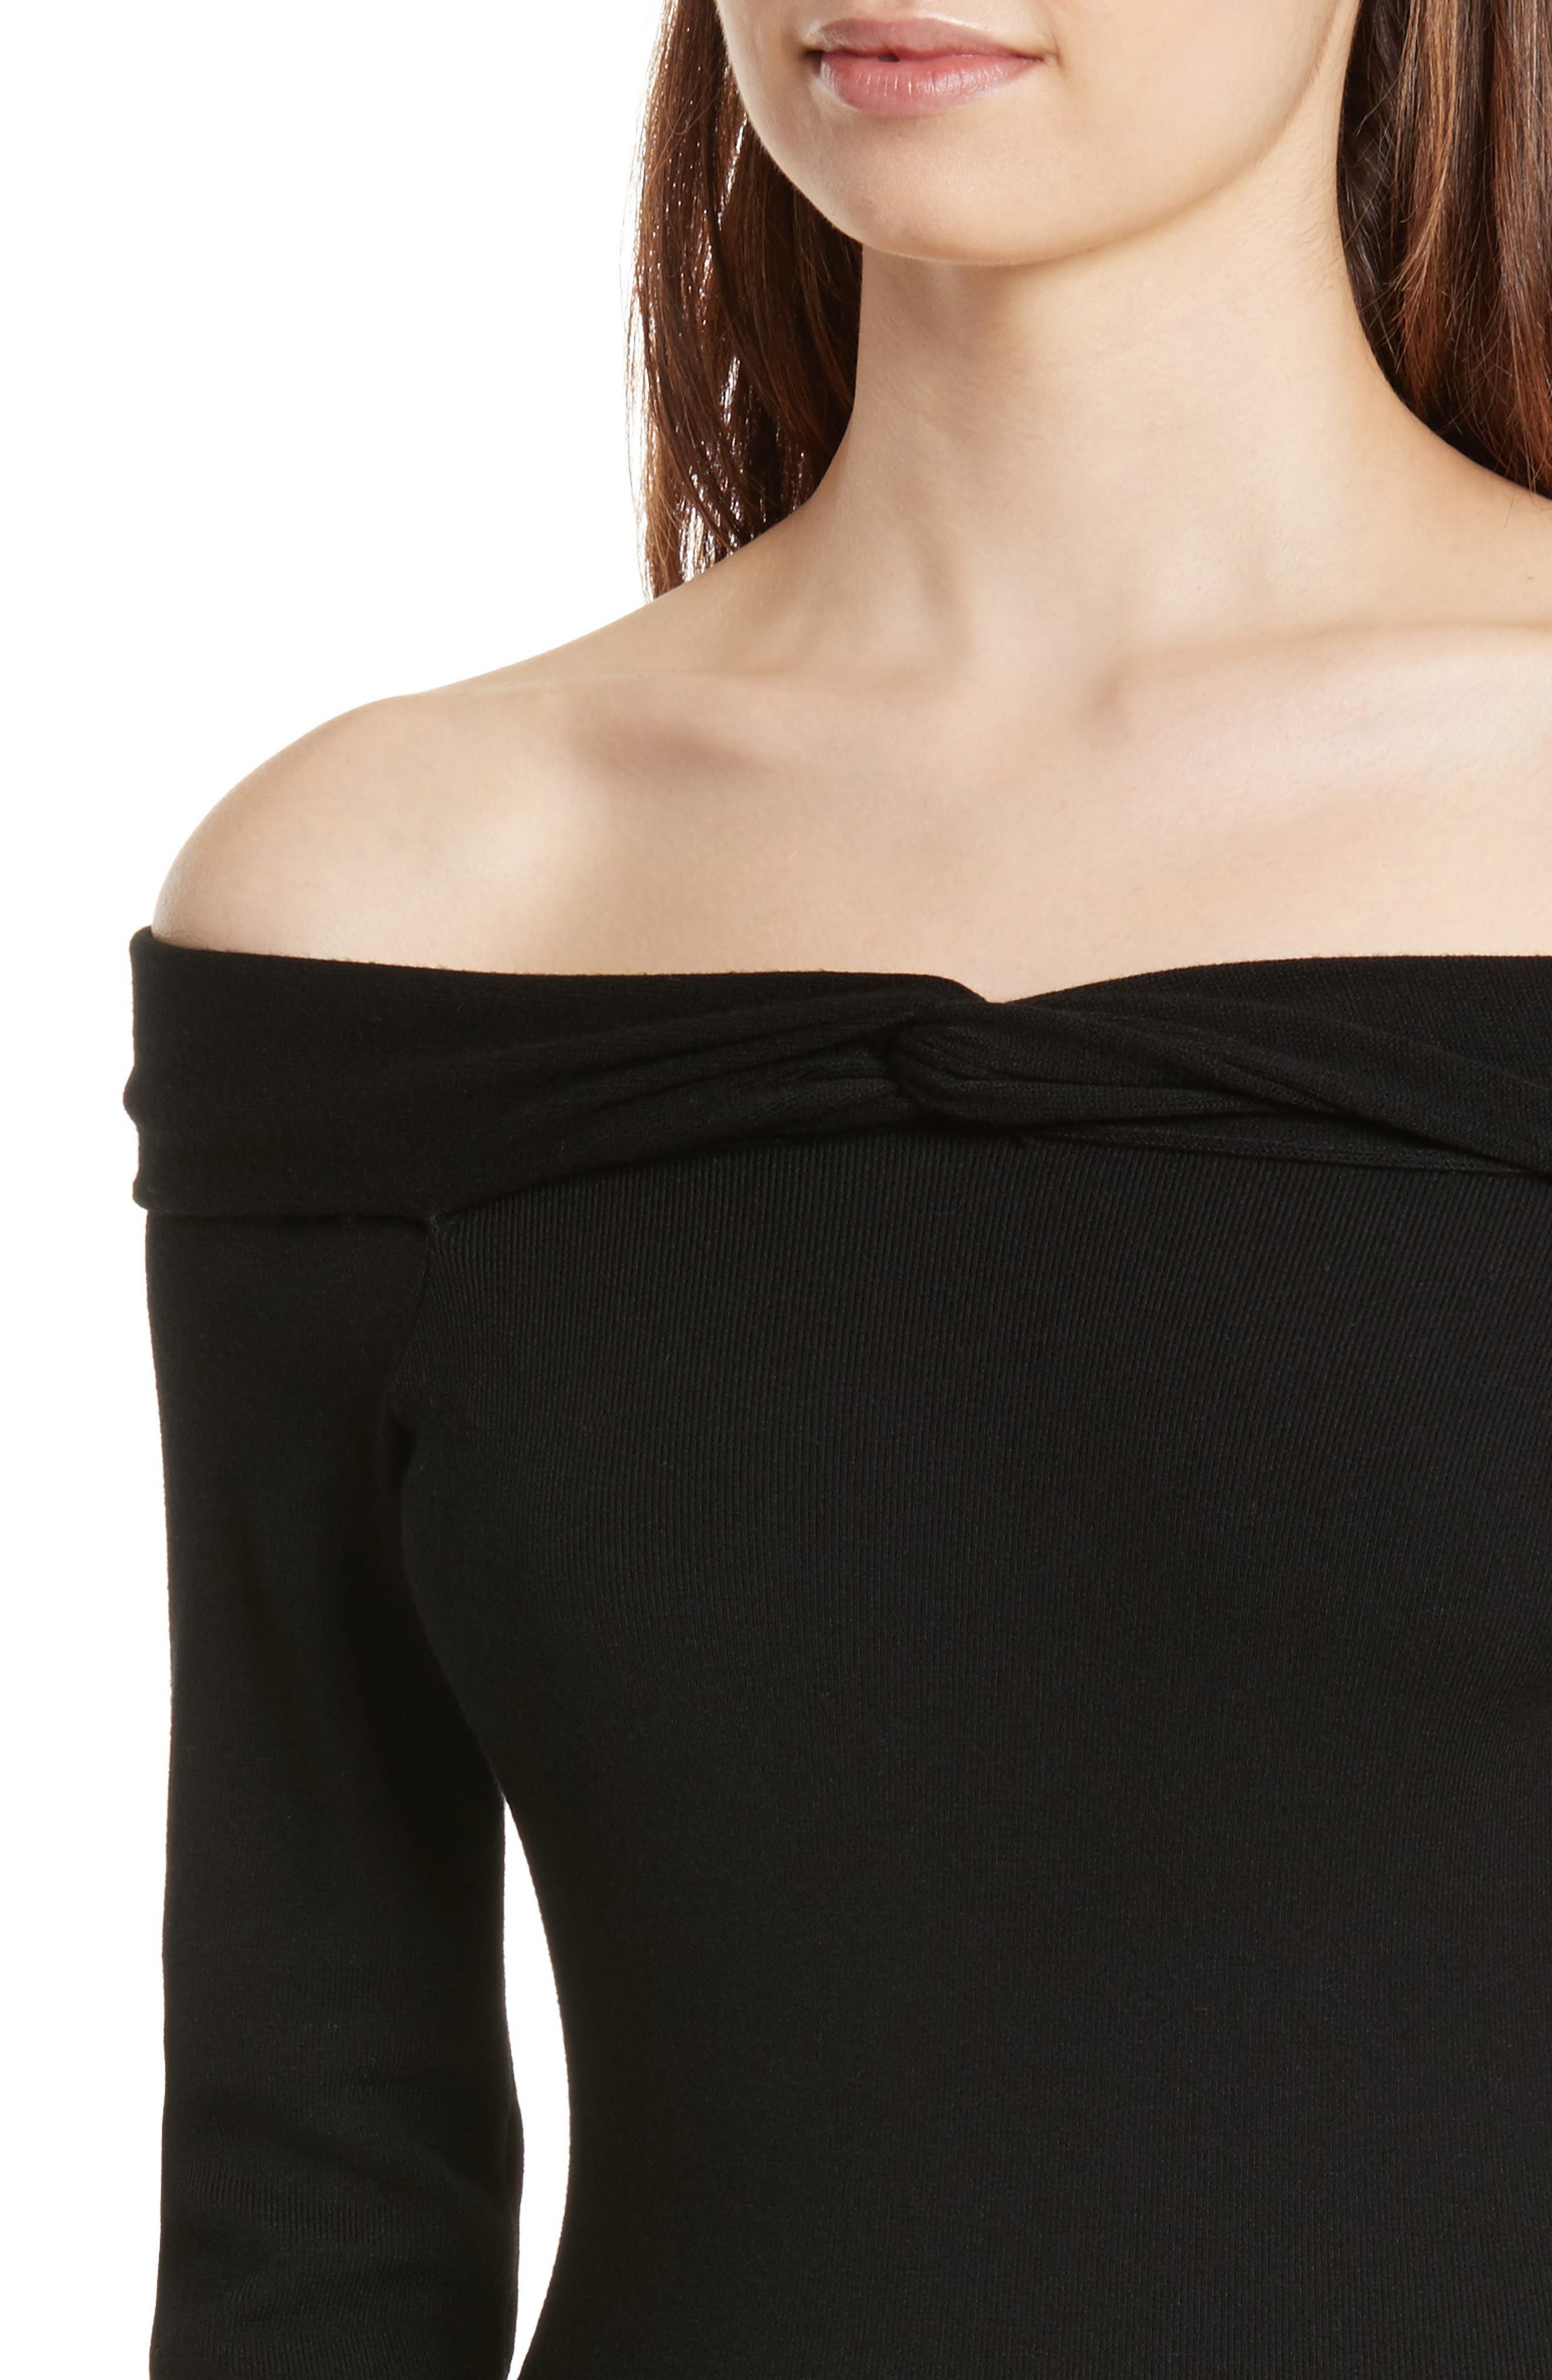 Twisted Off the Shoulder Dress,                             Alternate thumbnail 4, color,                             001